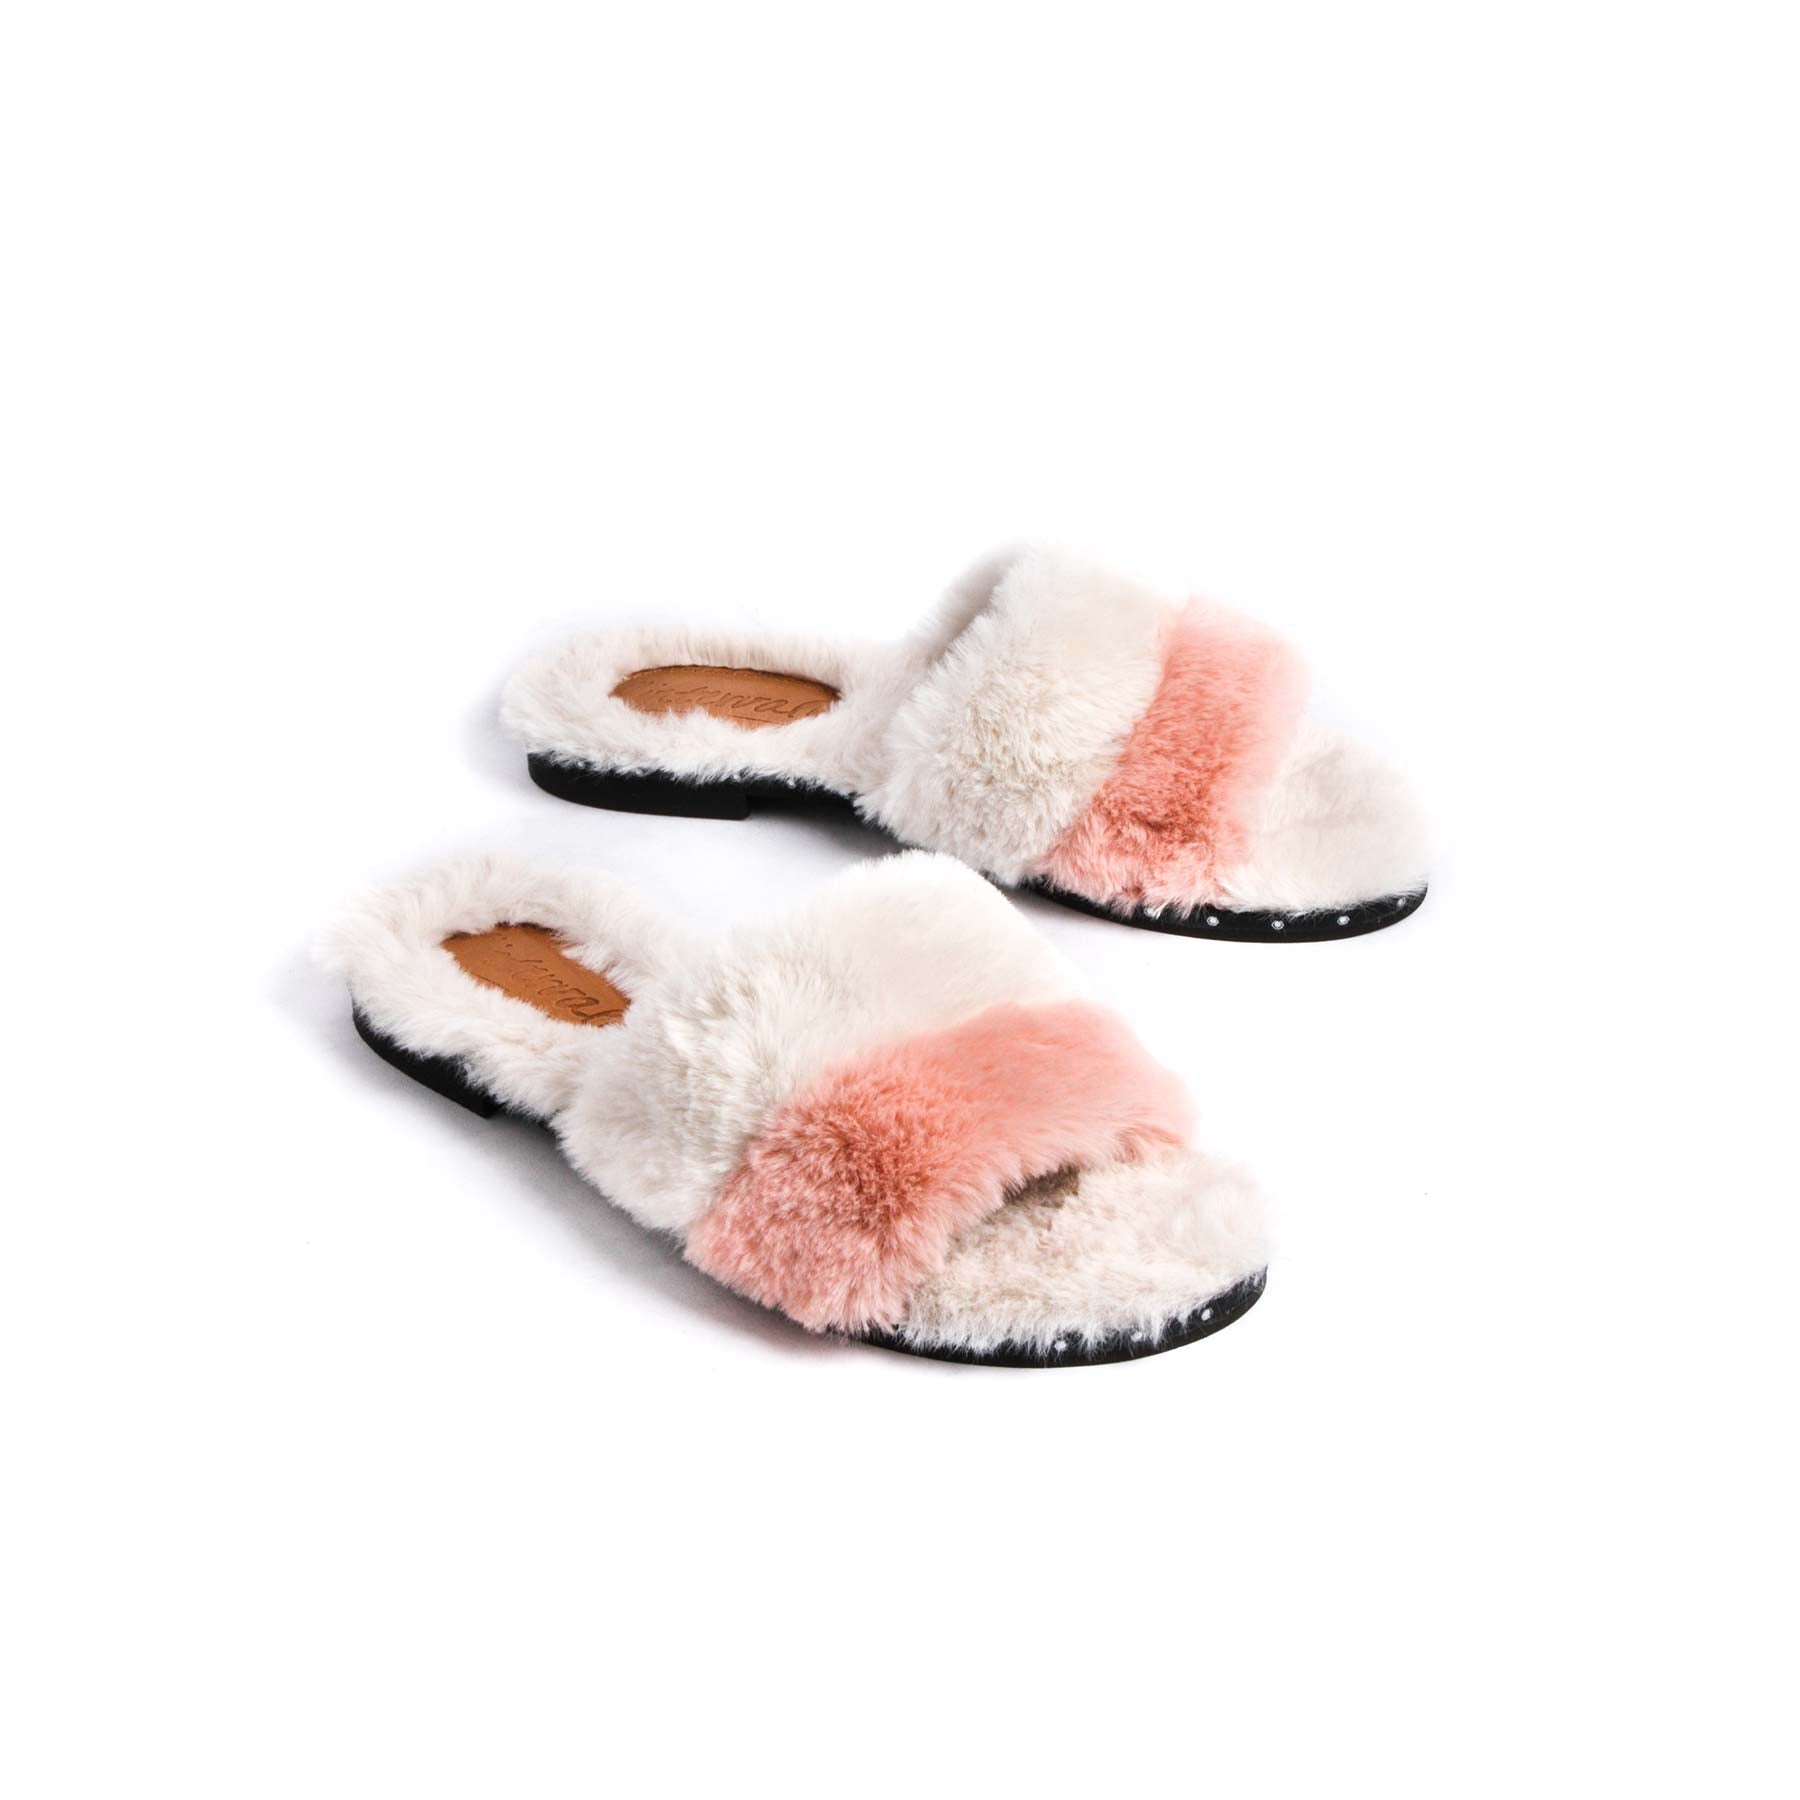 Sales, Esther Pink & White Fur - Lintervalle shoes for woman